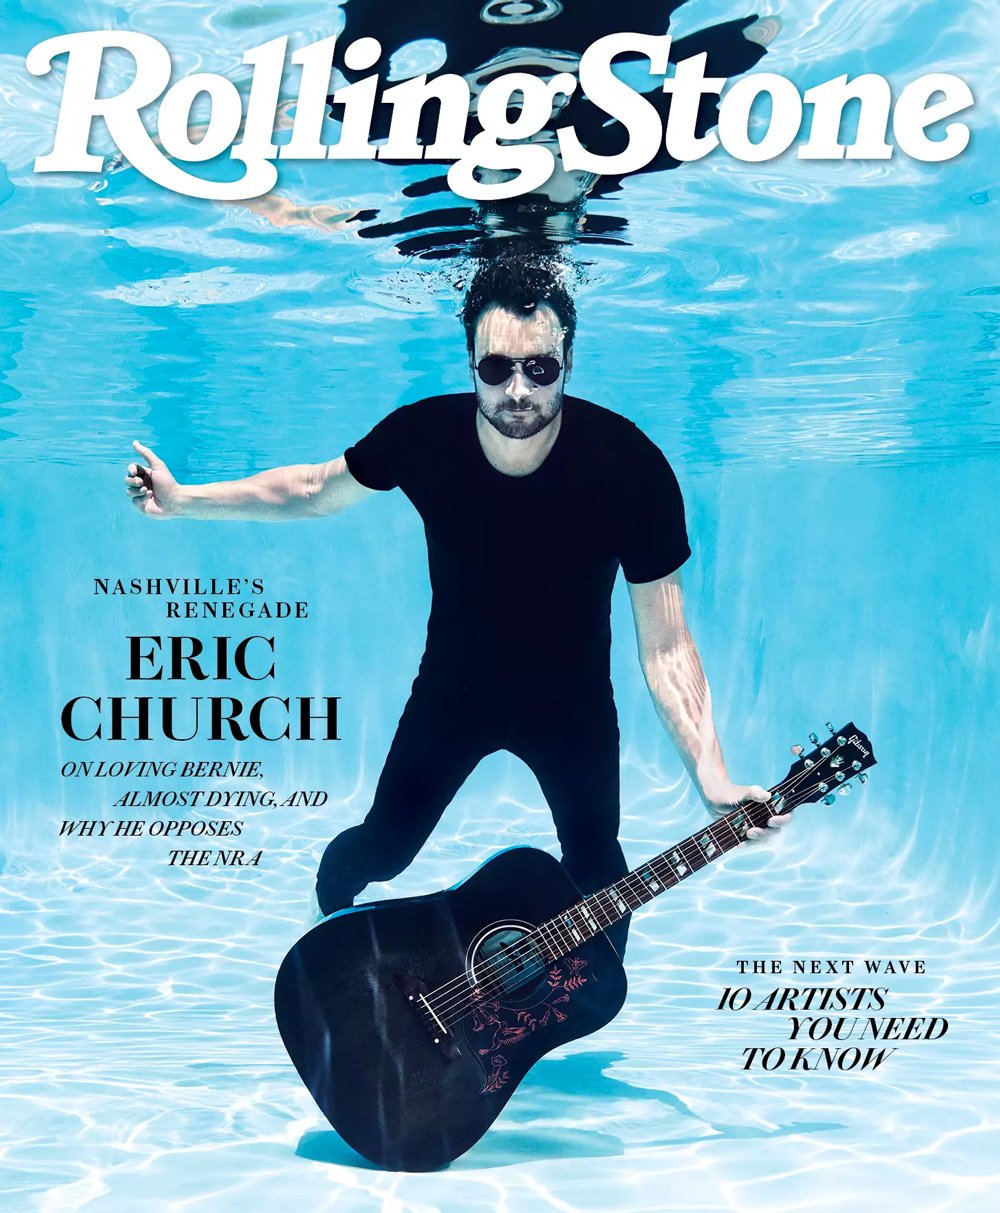 New Logo for Rolling Stone by Jim Parkinson